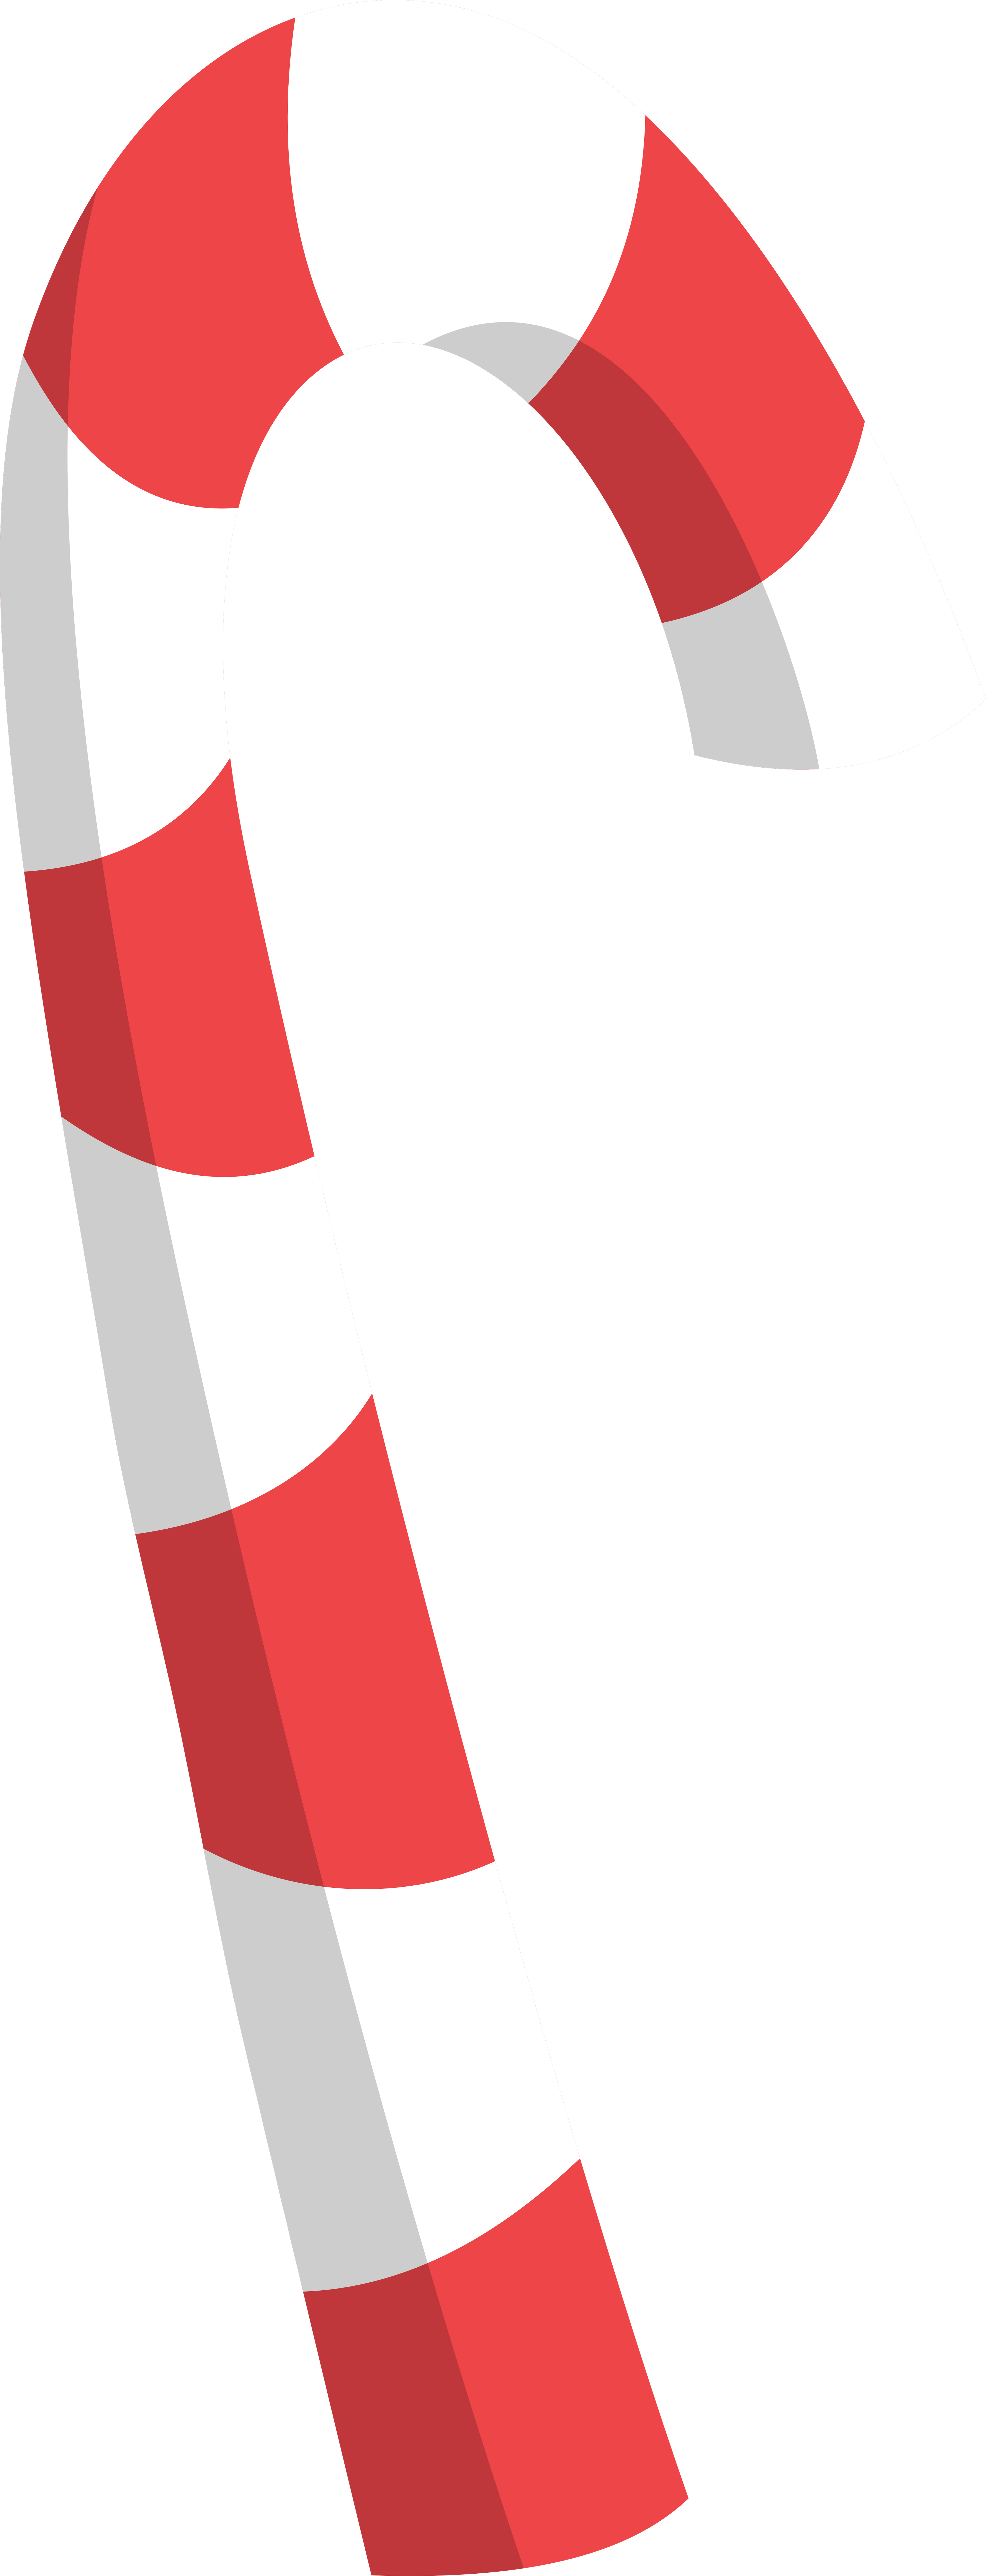 Candy Cane clipart cutie Candy krazy3 by krazy3 on